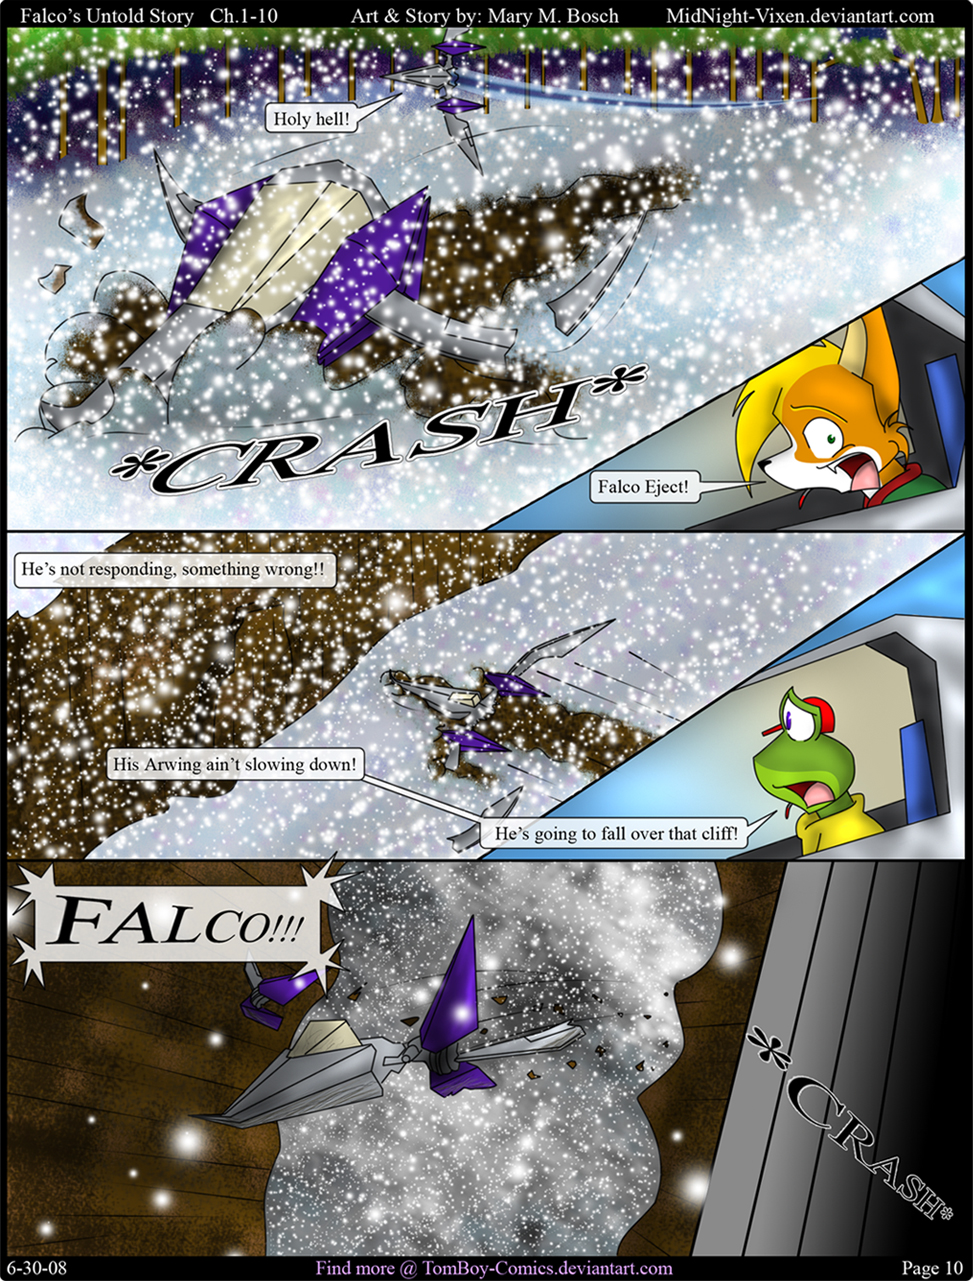 Falco's Untold Story Ch.1-10 by TomBoy-Comics